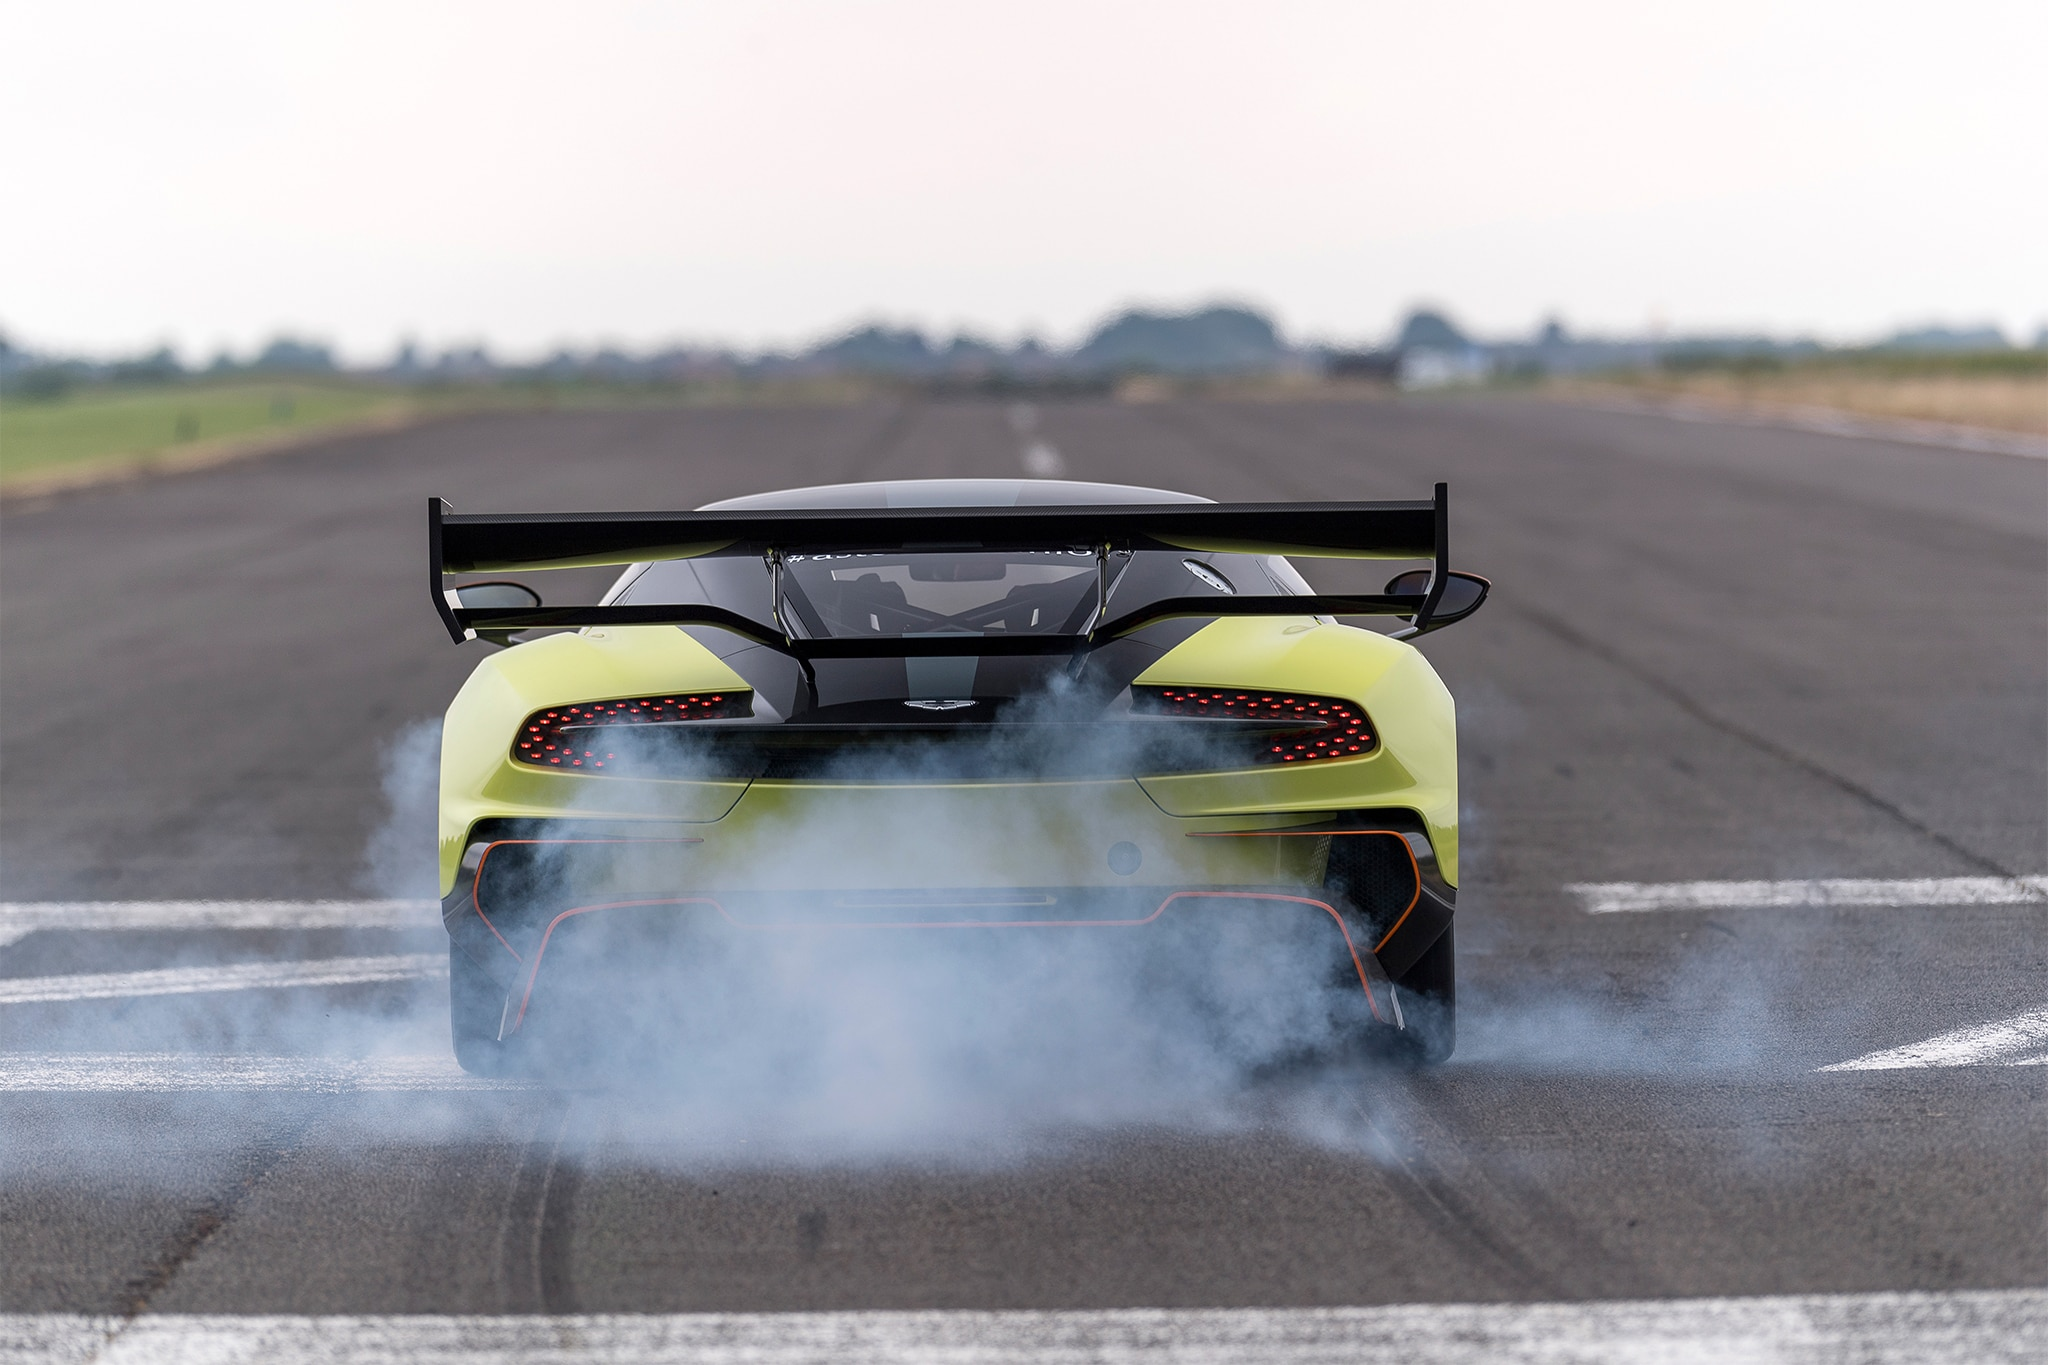 Aston Martin Vulcan AMR Pro unveiled at Goodwood